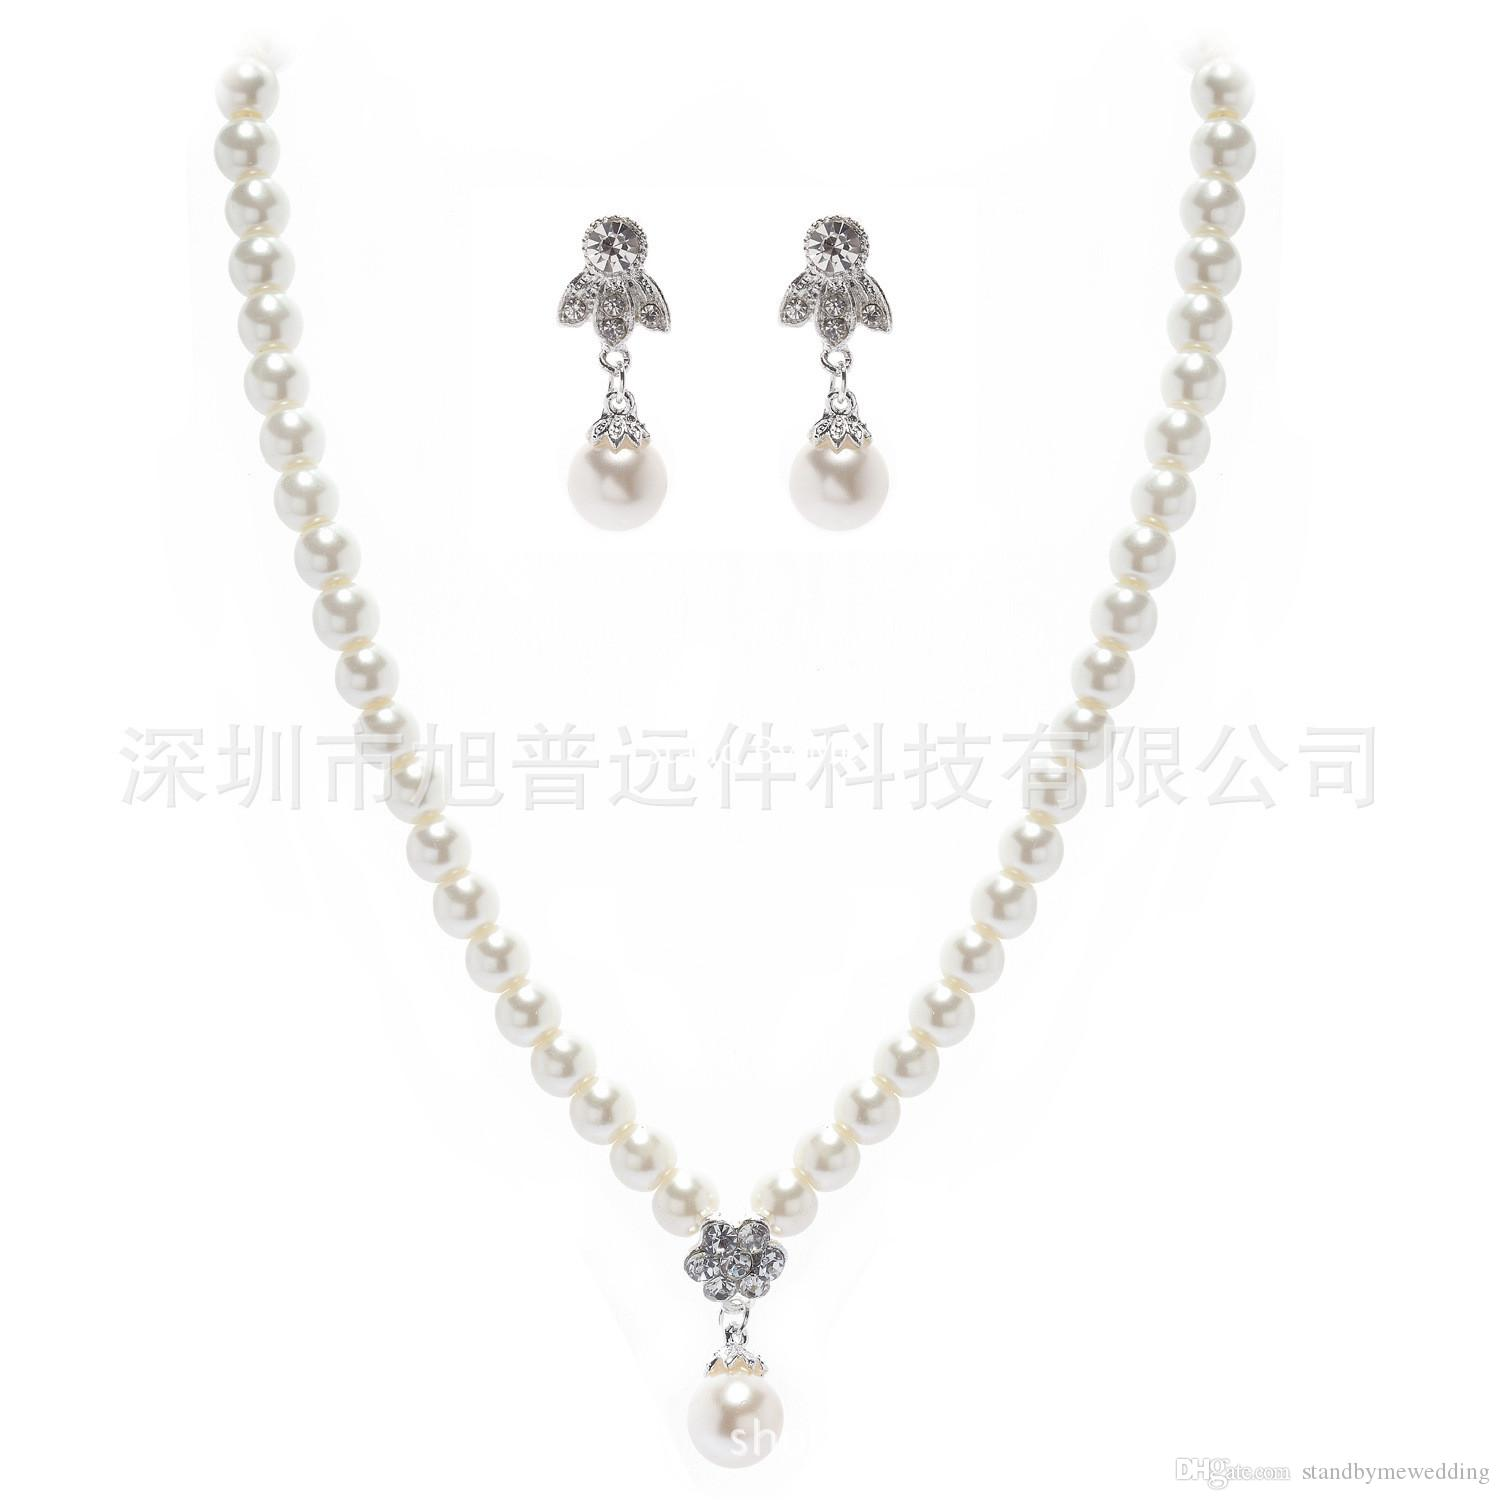 Bling Bridal Jewelry Imitation Pearls Bride Prom Wedding Jewellery